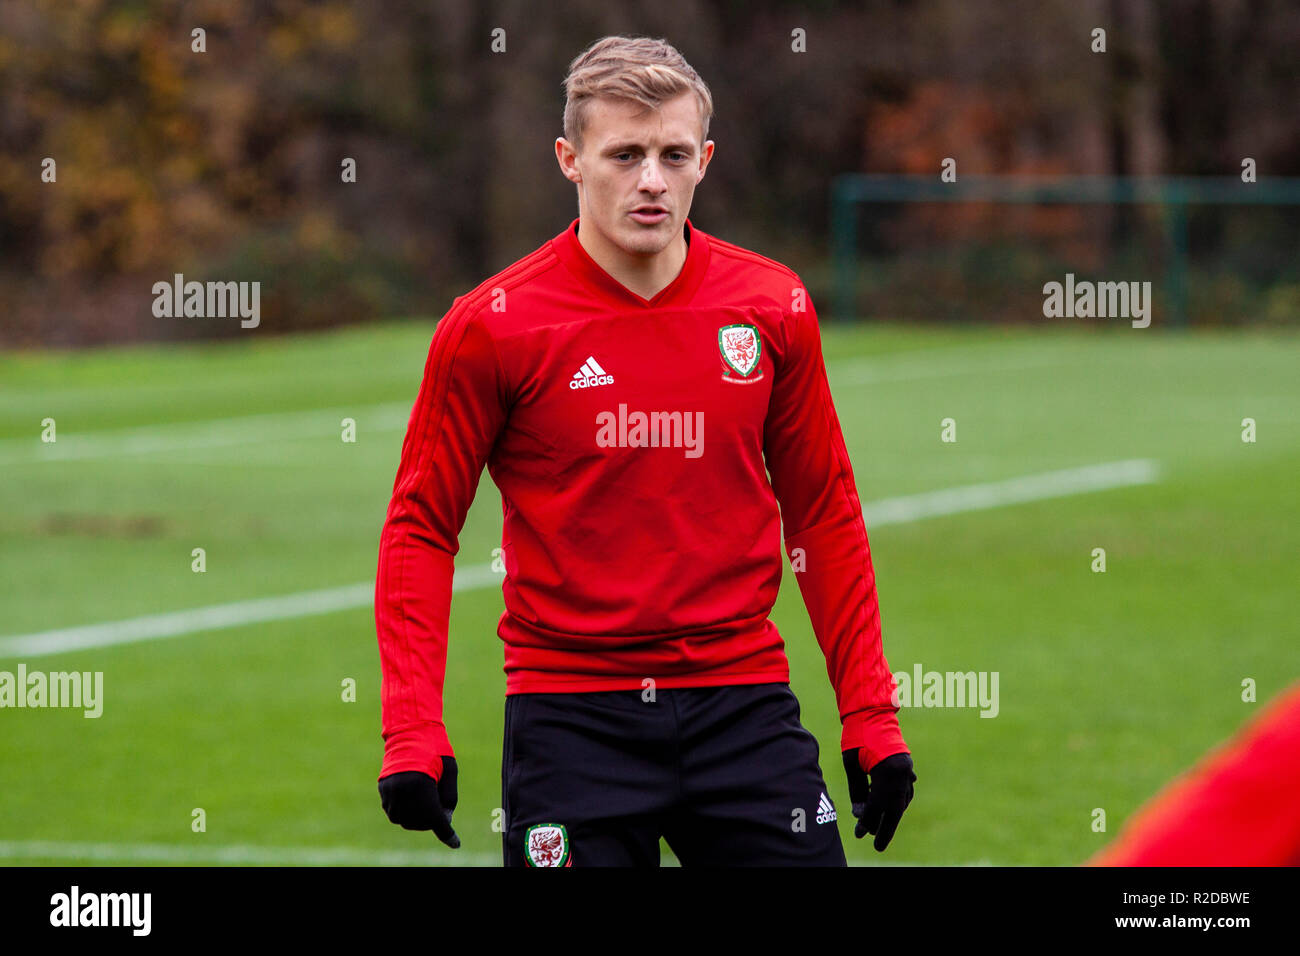 Cardiff, Wales. 15th November, 2018. Wales train ahead of their upcoming friendly against Albania. Lewis Mitchell/YCPD. Credit: Lewis Mitchell/Alamy Live News Stock Photo